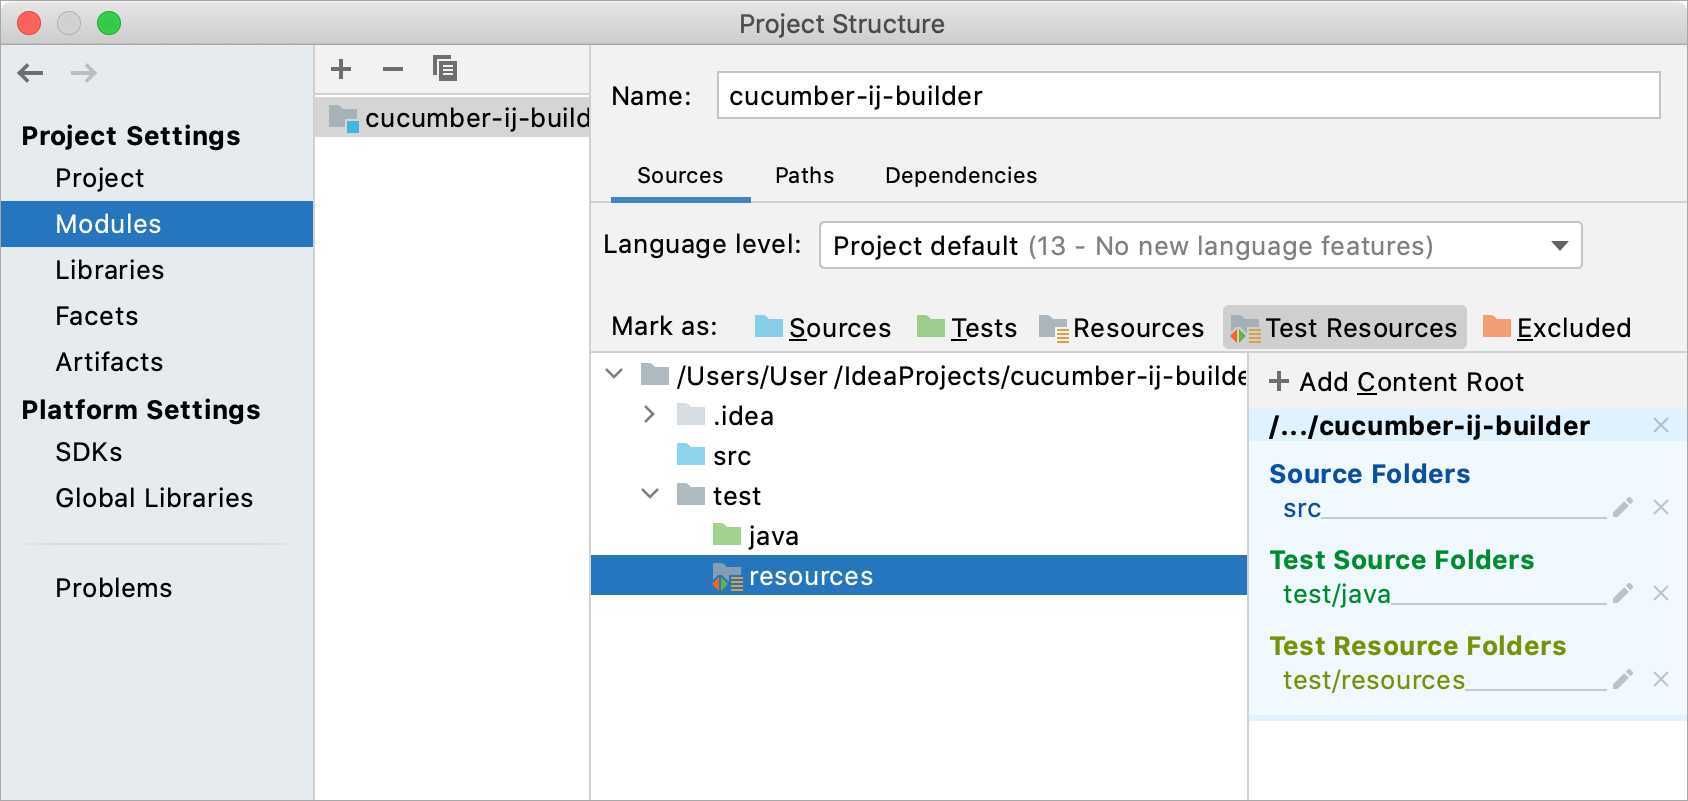 Test Resources Root created in the Project Strucuture dilaog